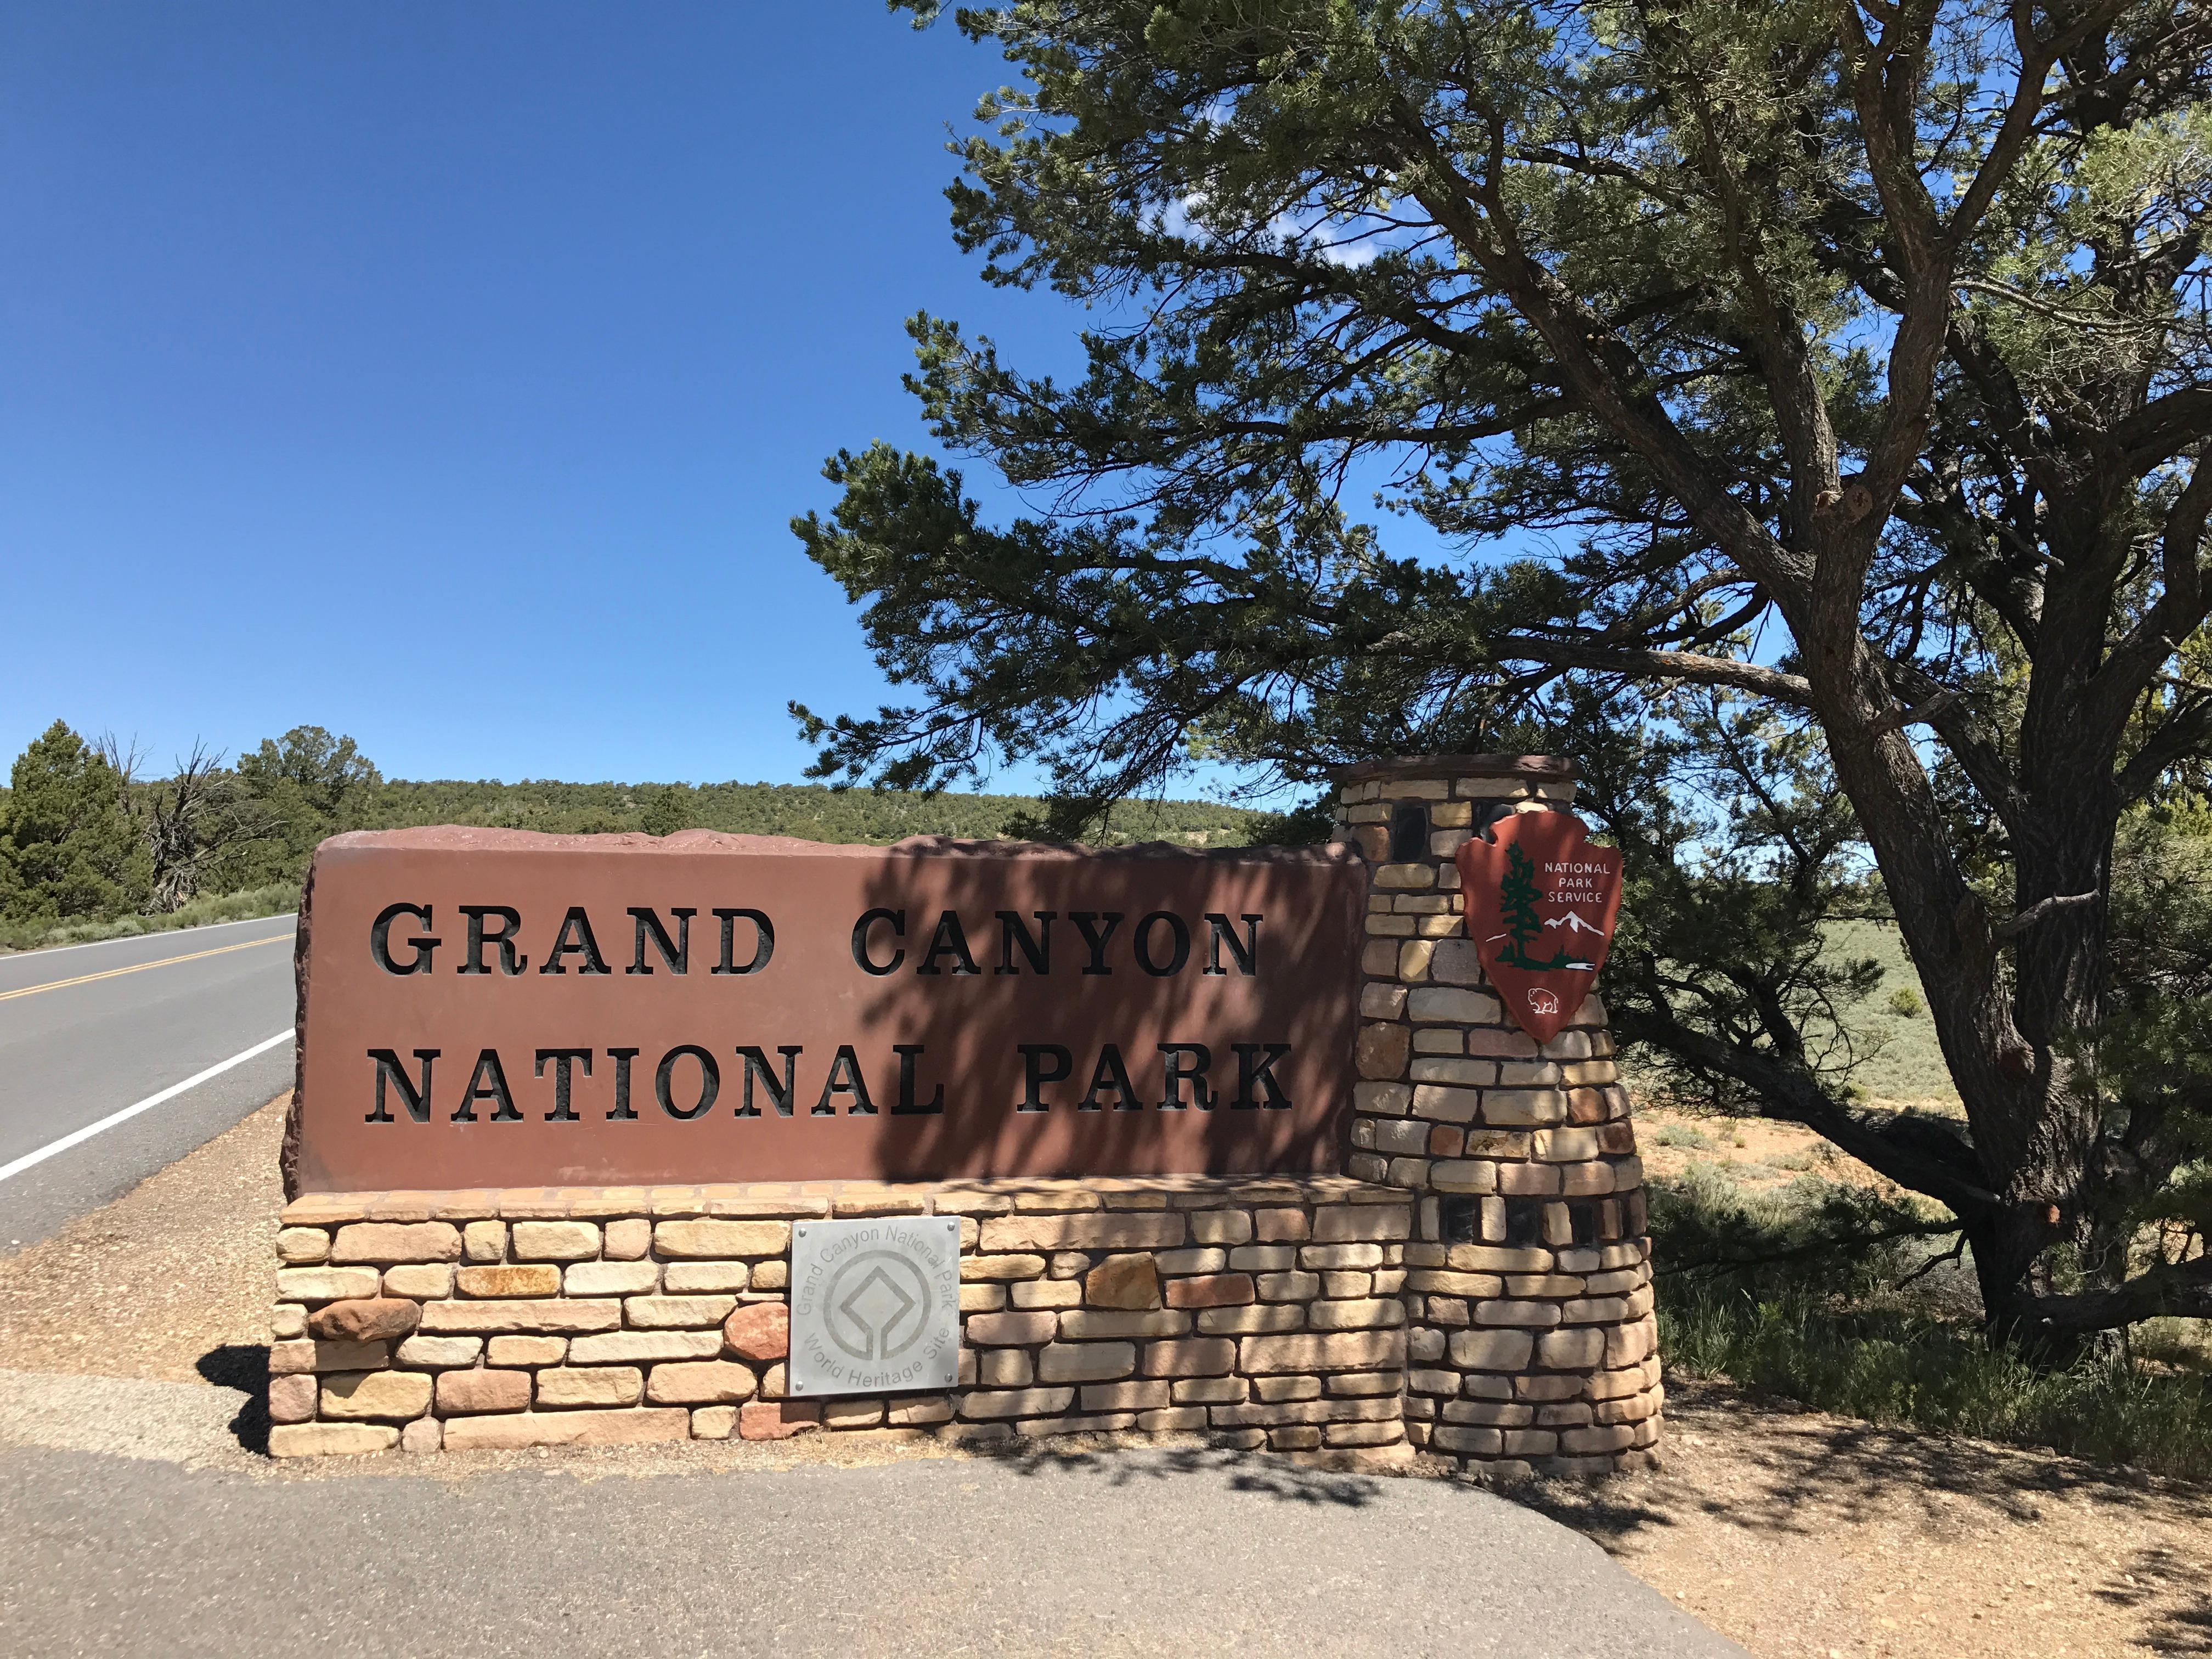 Yavapai Lodge - Inside the Park, Grand Canyon: 2019 Room Rates ... on